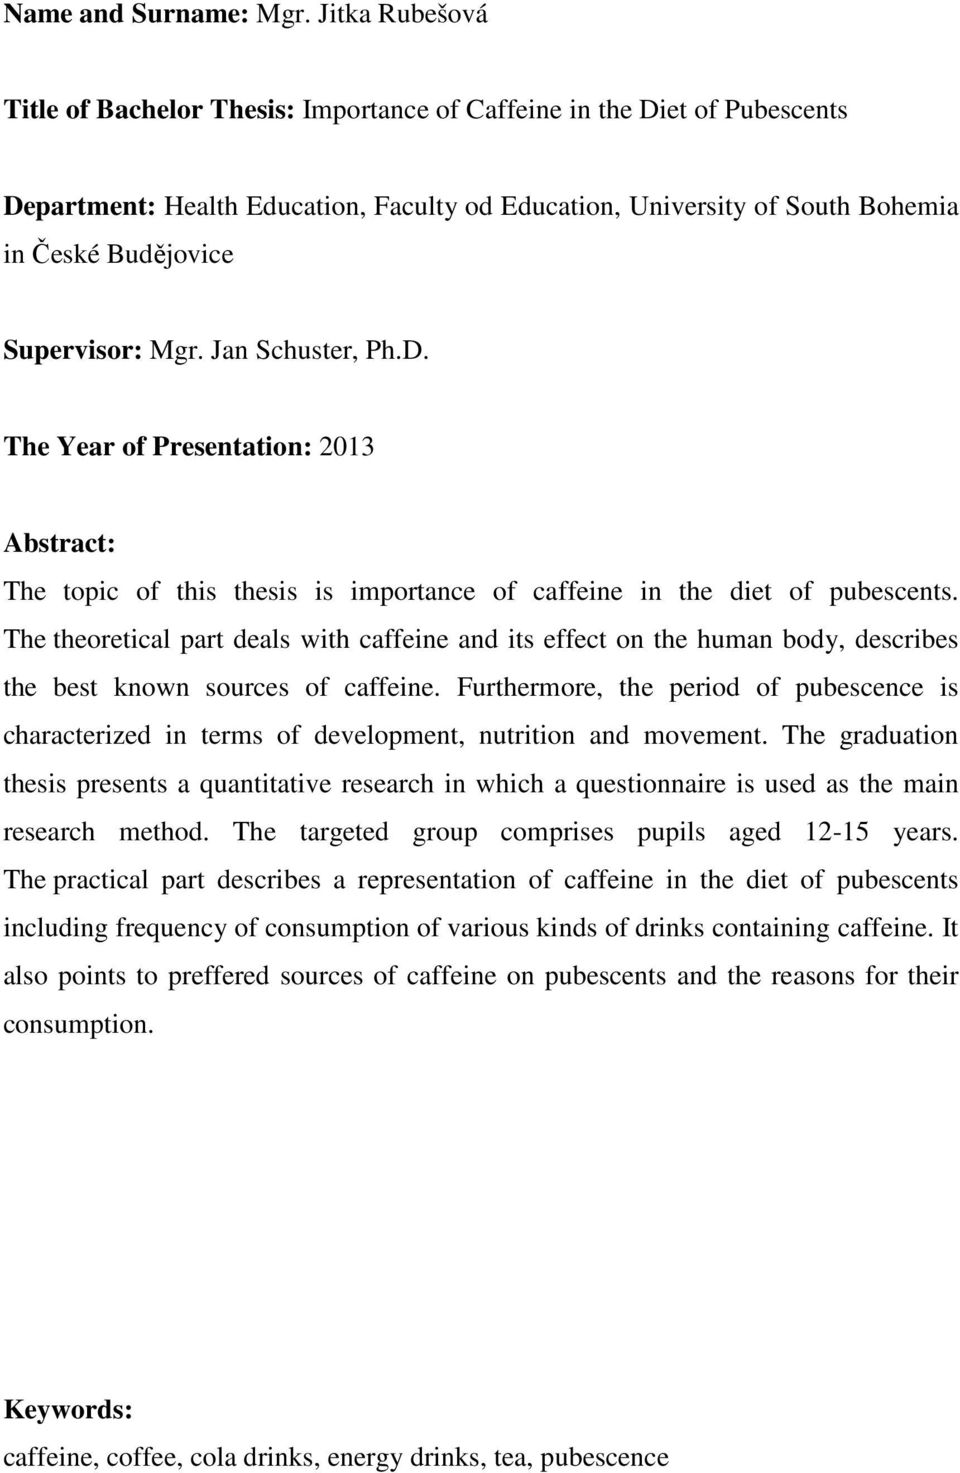 Supervisor: Mgr. Jan Schuster, Ph.D. The Year of Presentation: 2013 Abstract: The topic of this thesis is importance of caffeine in the diet of pubescents.